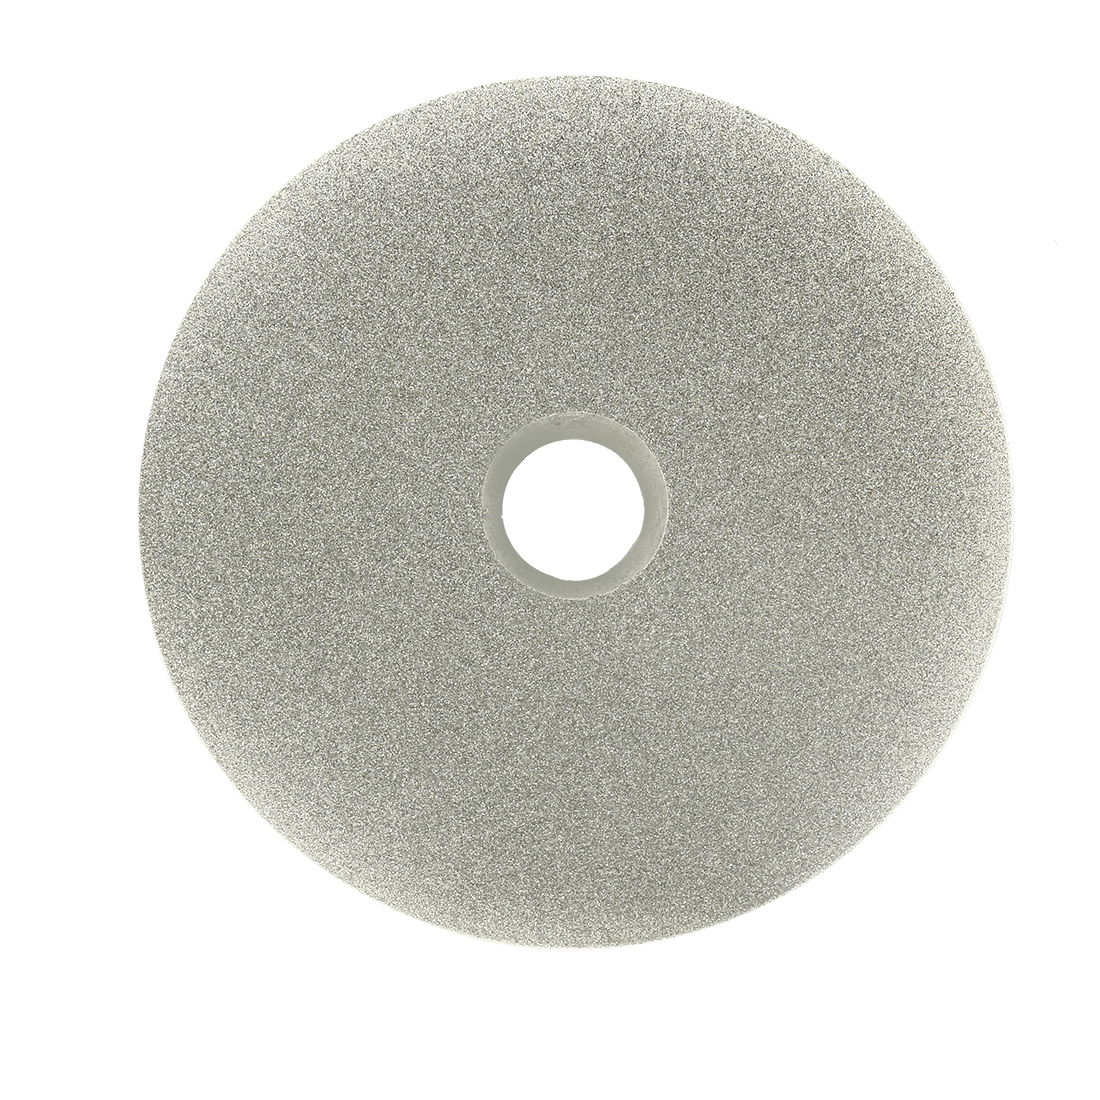 100mm 4-inch Grit 180 Diamond Coated Flat Lap Disk Wheel Grinding Sanding Disc